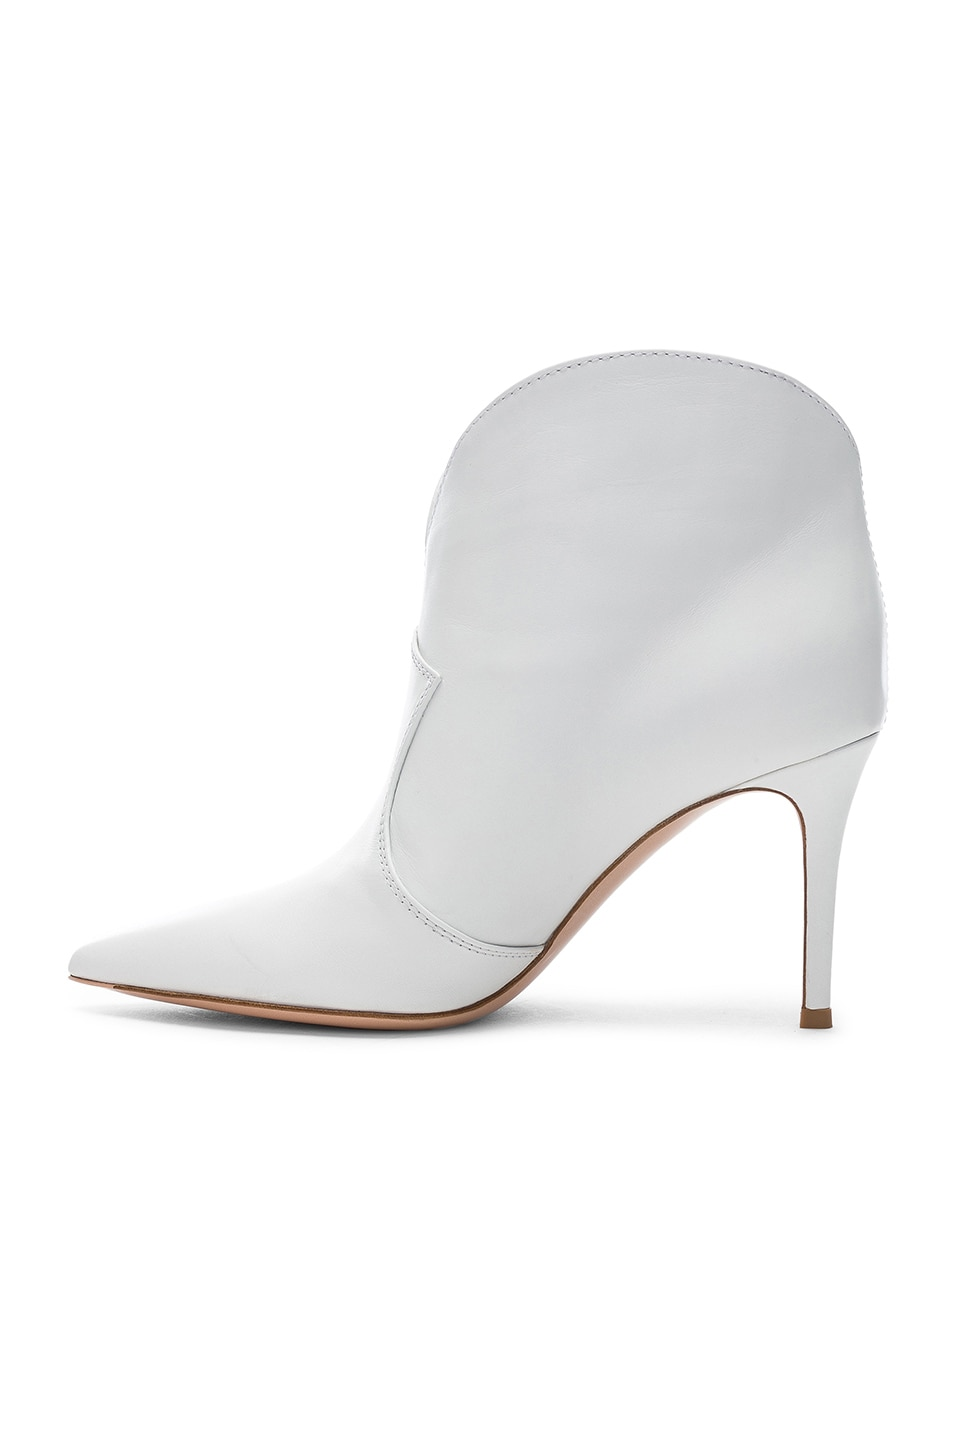 Image 5 of Gianvito Rossi Mable Mid Booties in White